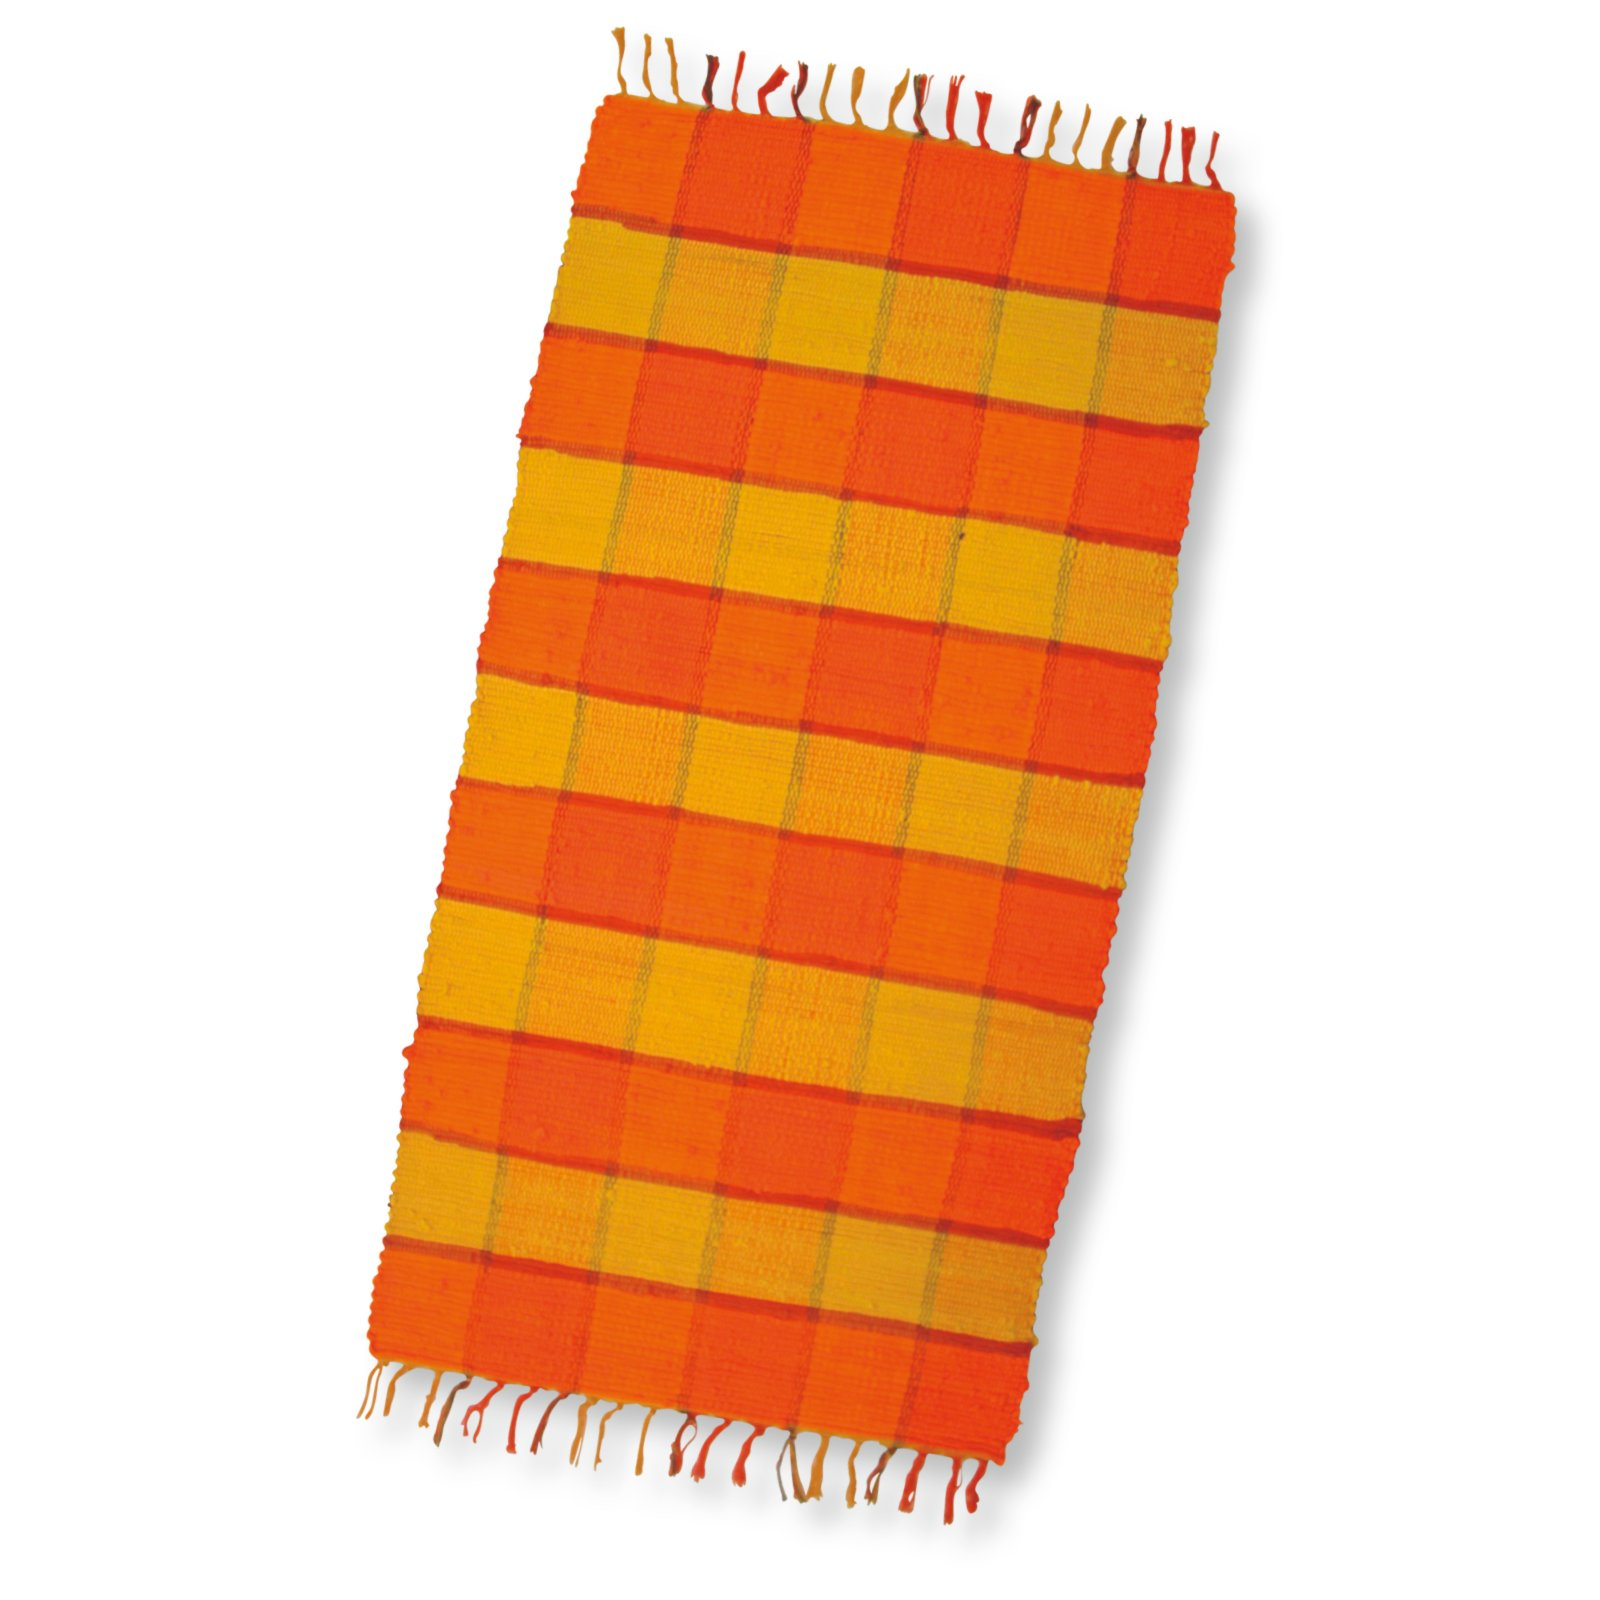 Teppich CALIFORNIEN - 65x130 cm - orange